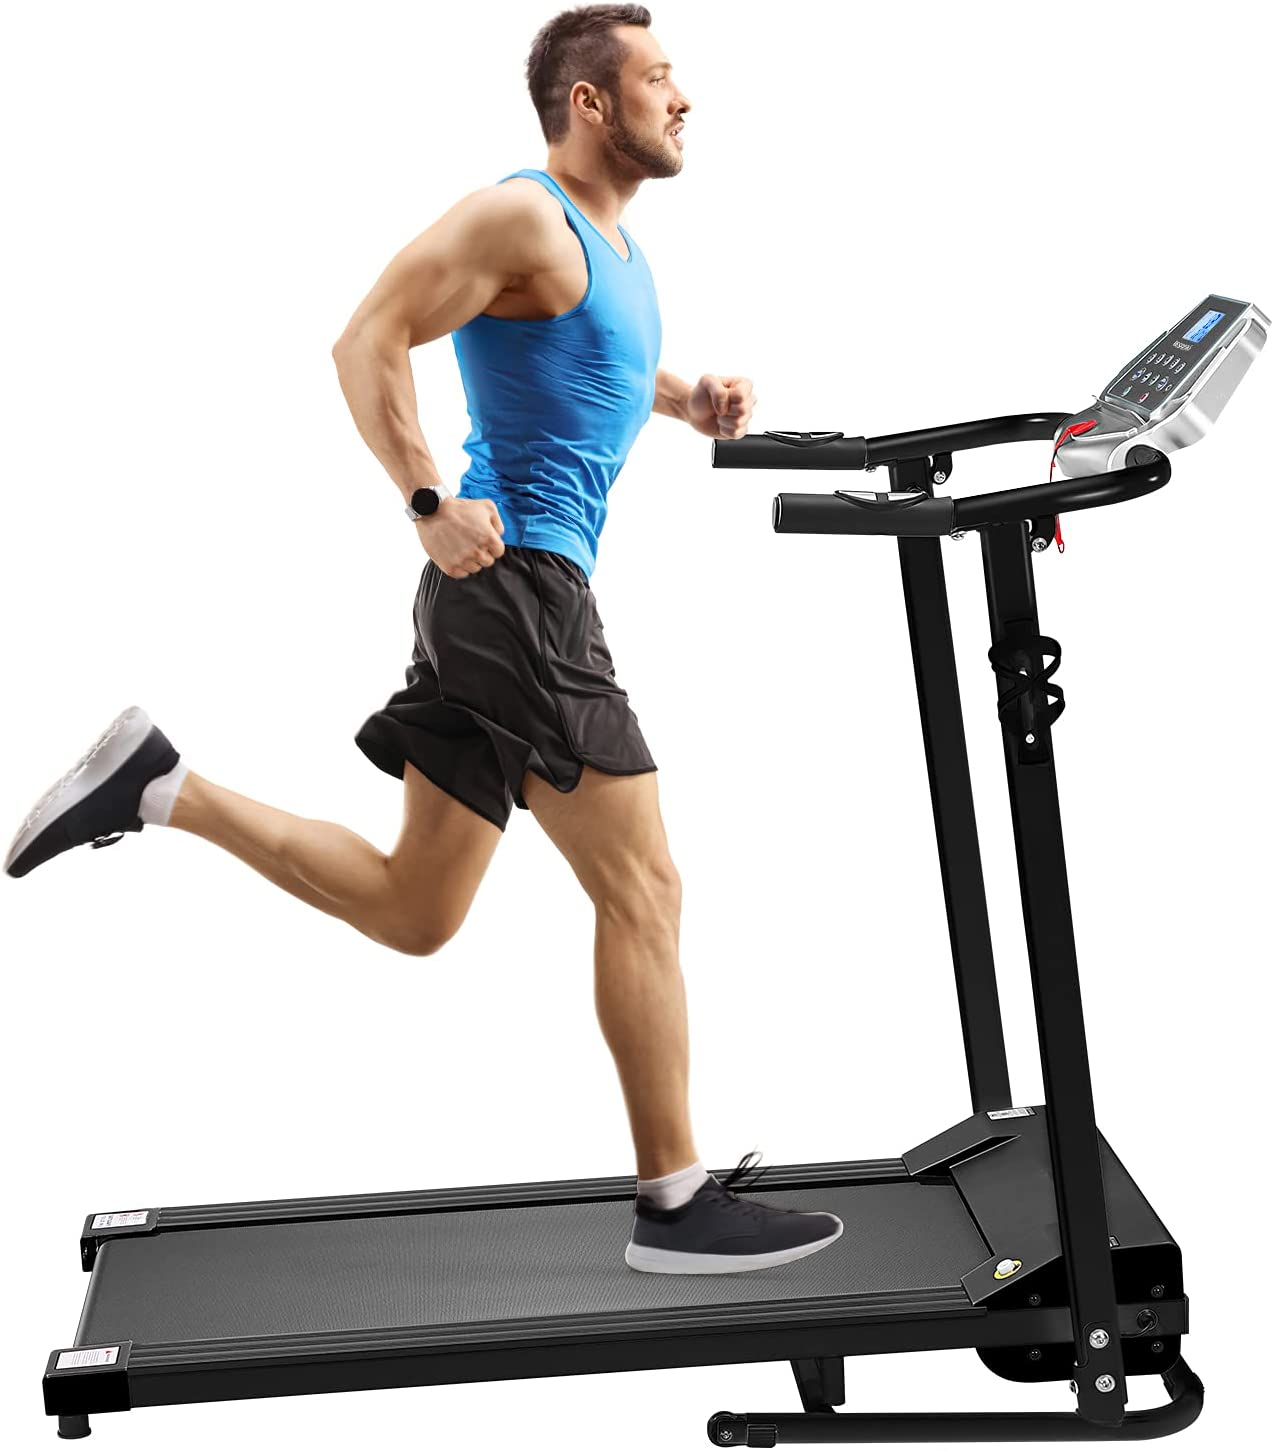 Foldable Treadmill Electric Running Machine: Folding Walking Pad 12 Program Portable Compact Quiet Jogging Run Treadmills for Home Apartment Commercial Small Spaces Adult Seniors Obese People Exercise